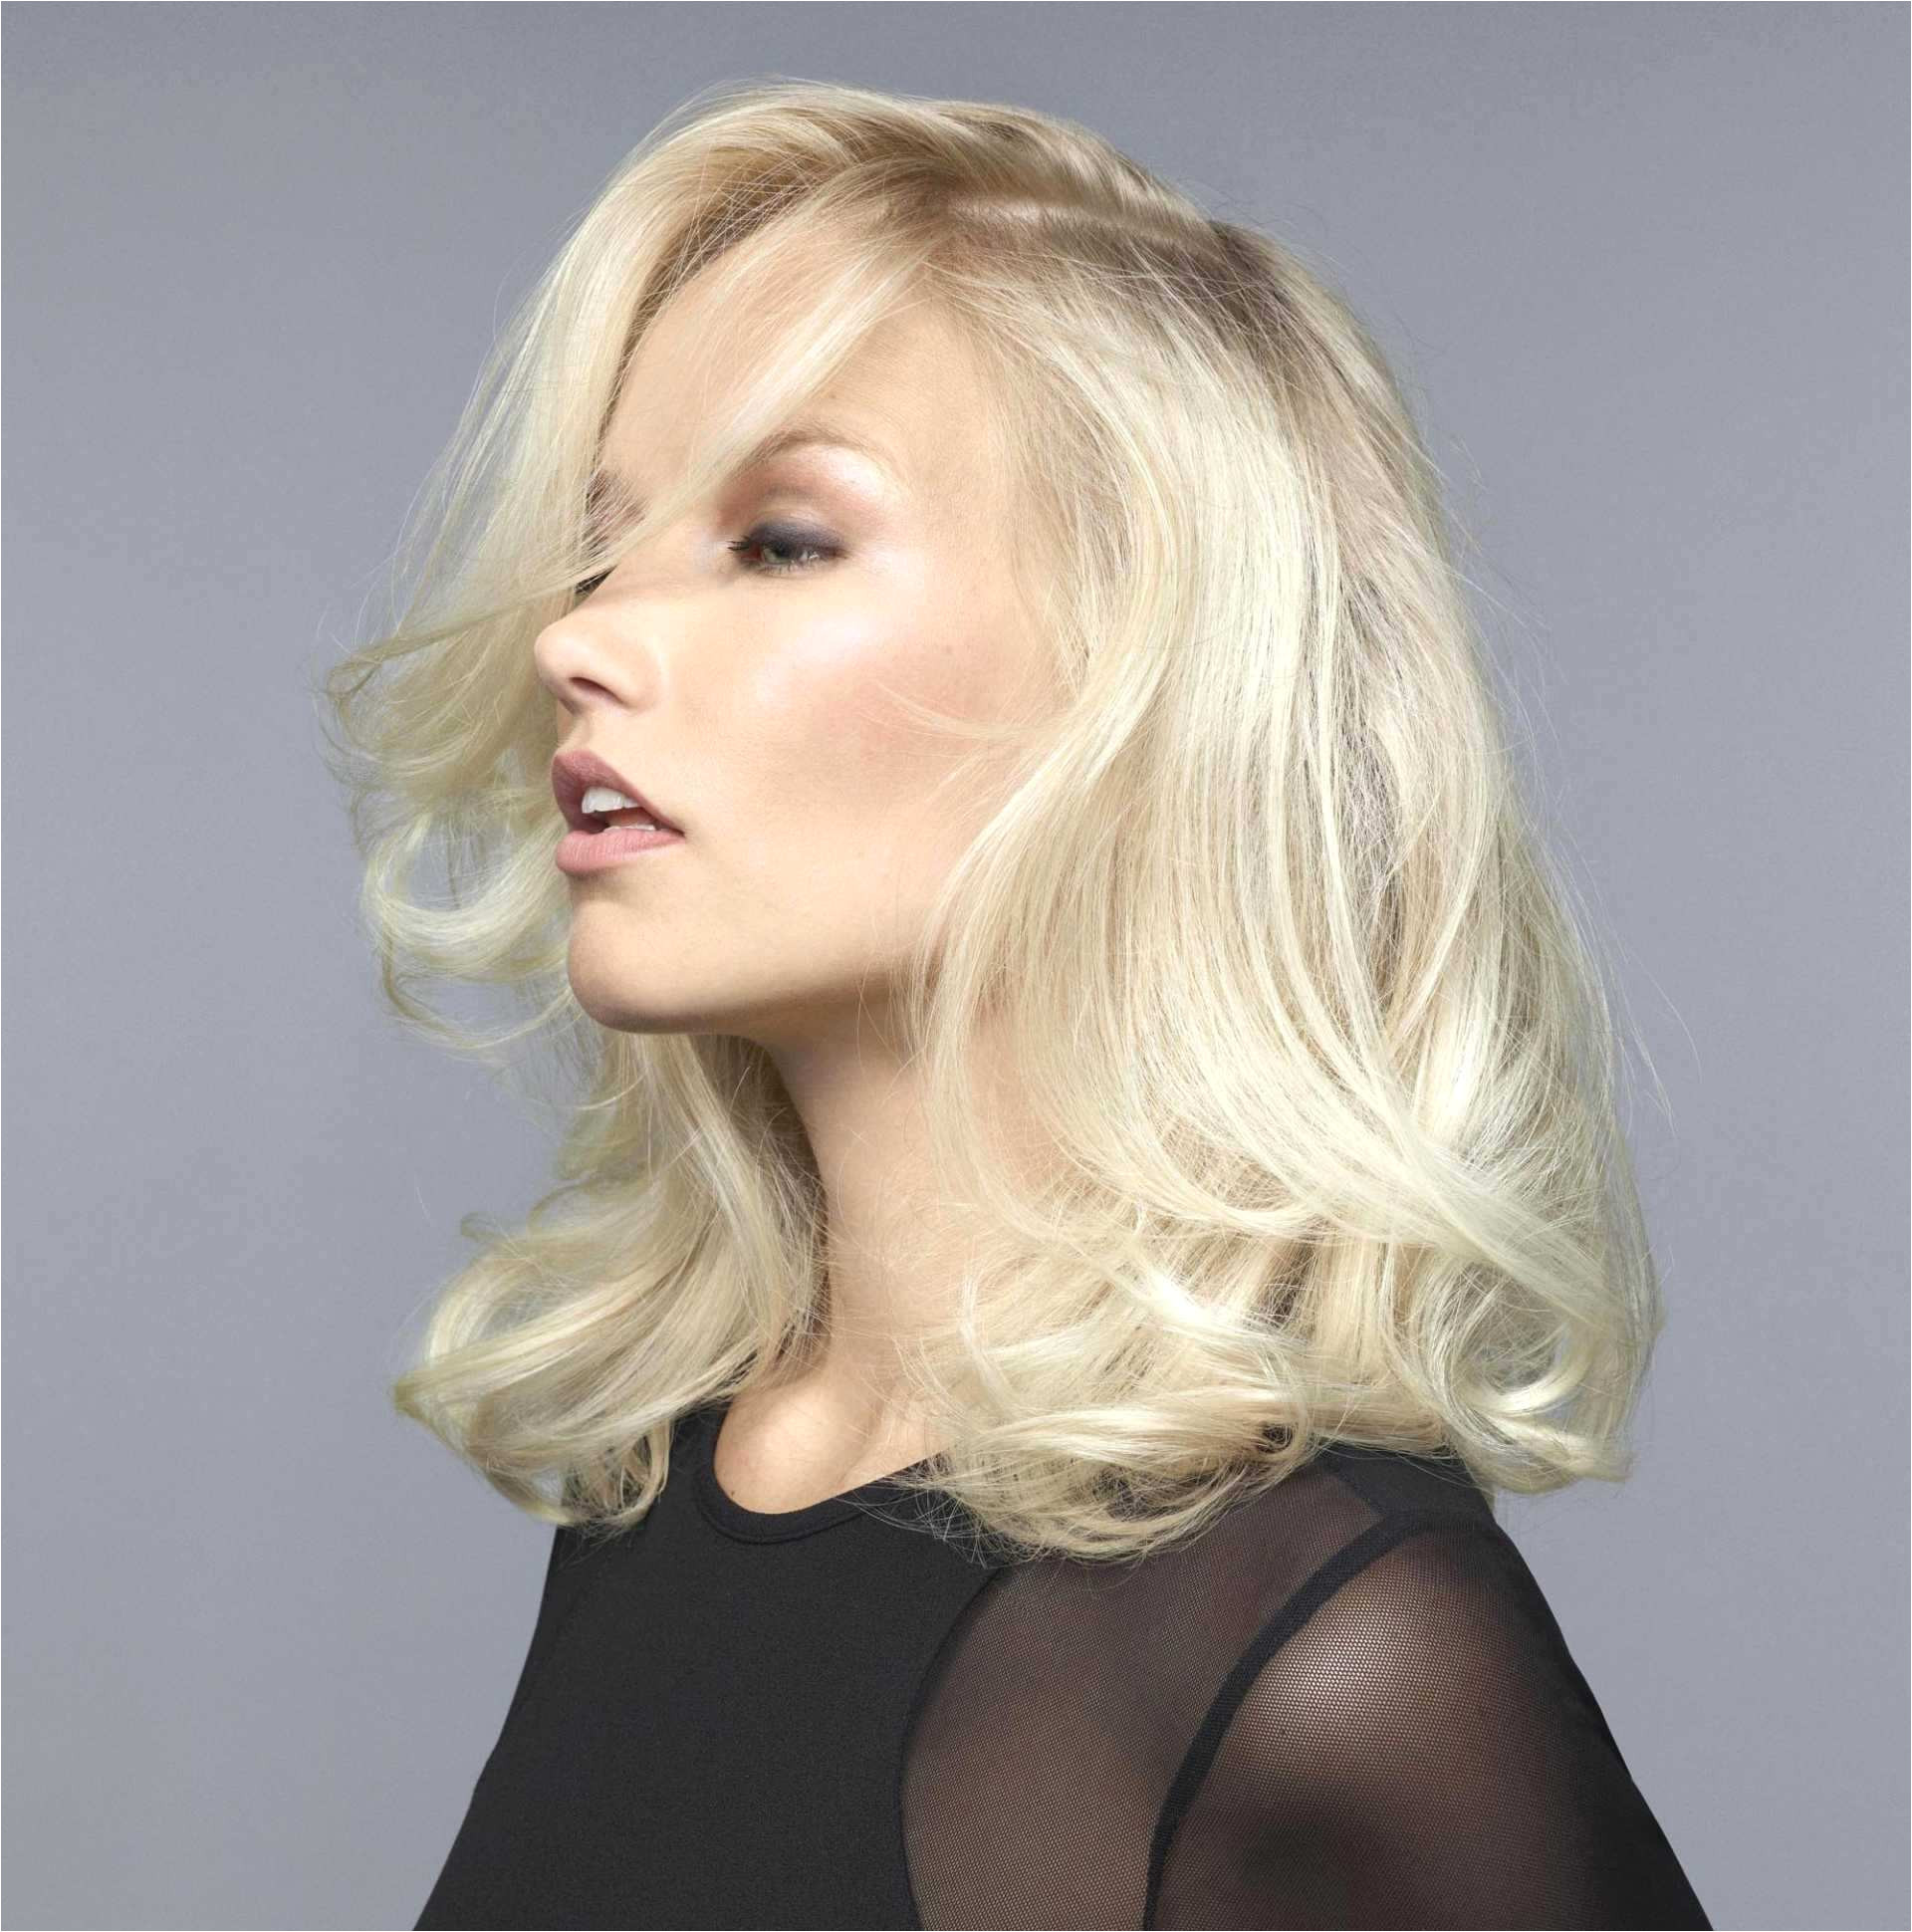 Hairstyle for Girls with Curly Hair Inspirational Long Curly Bob Hairstyles Names Hairstyles New Very Curly